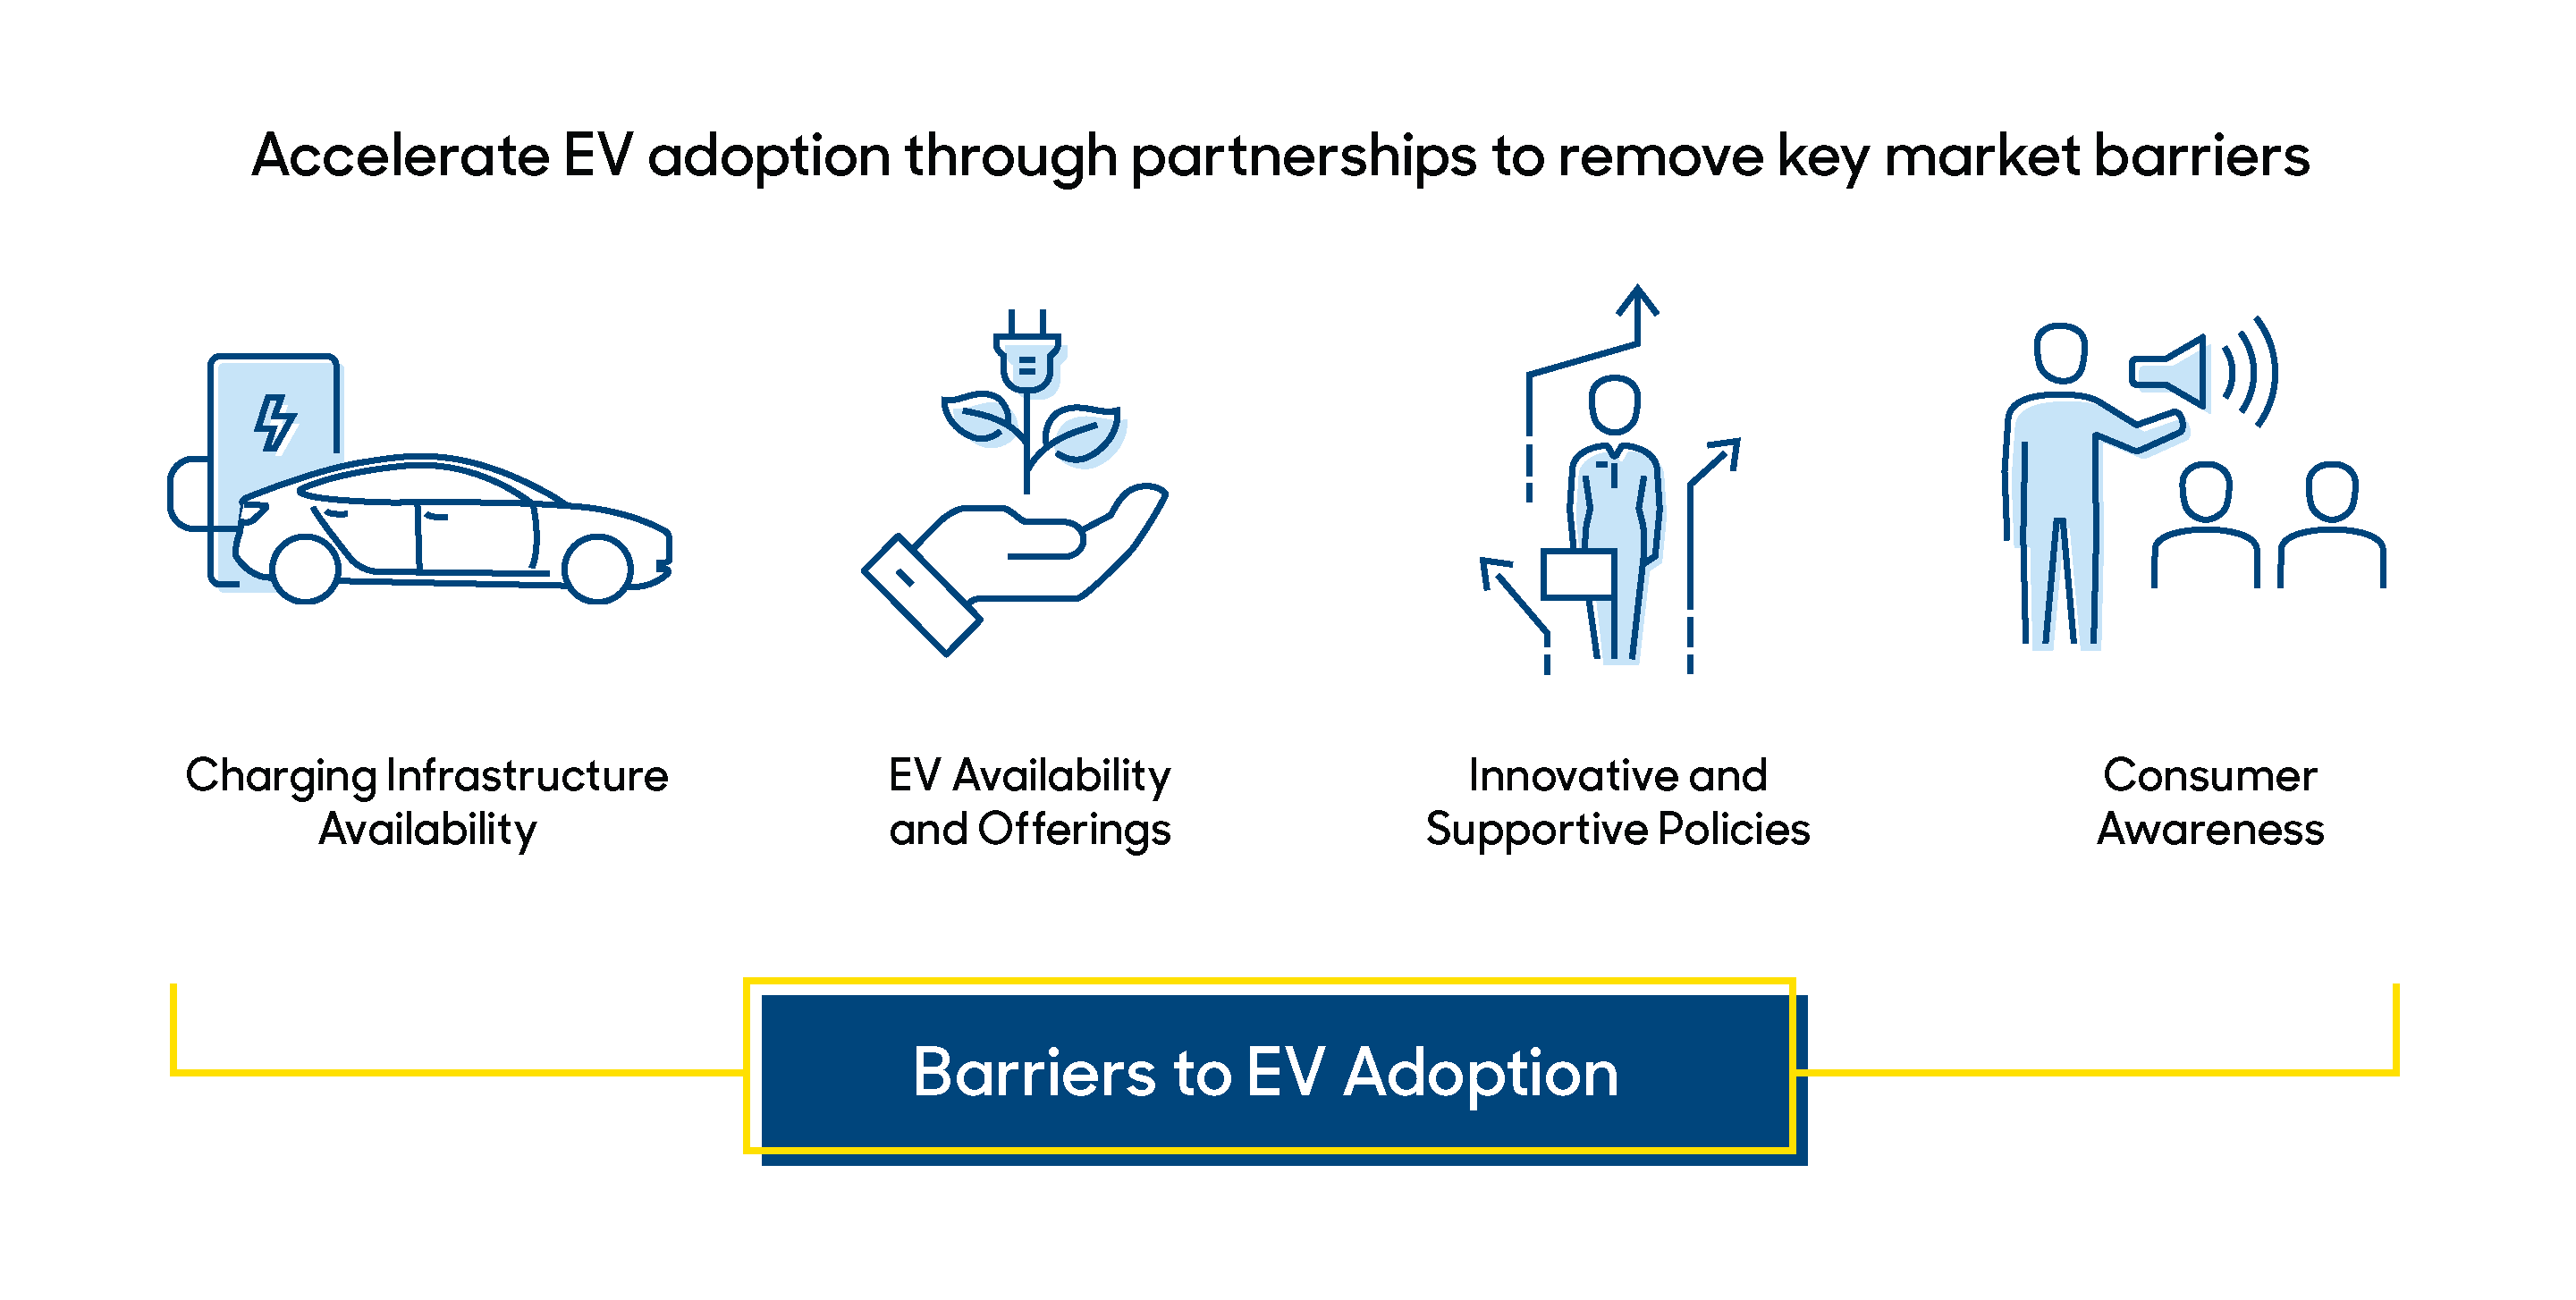 Graphic of barriers to EV adoption